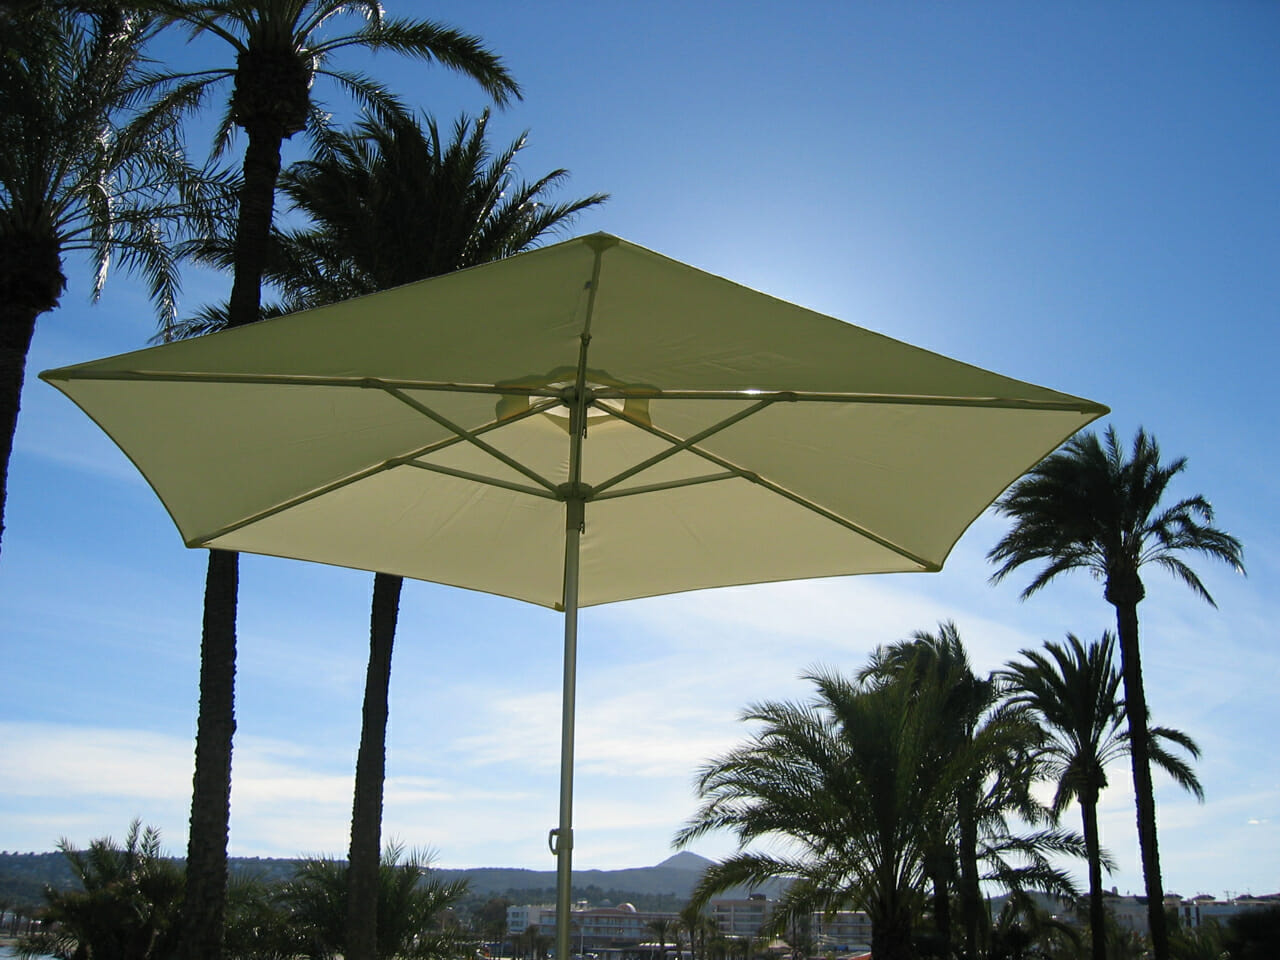 P50 Umbrella with palm trees in the background